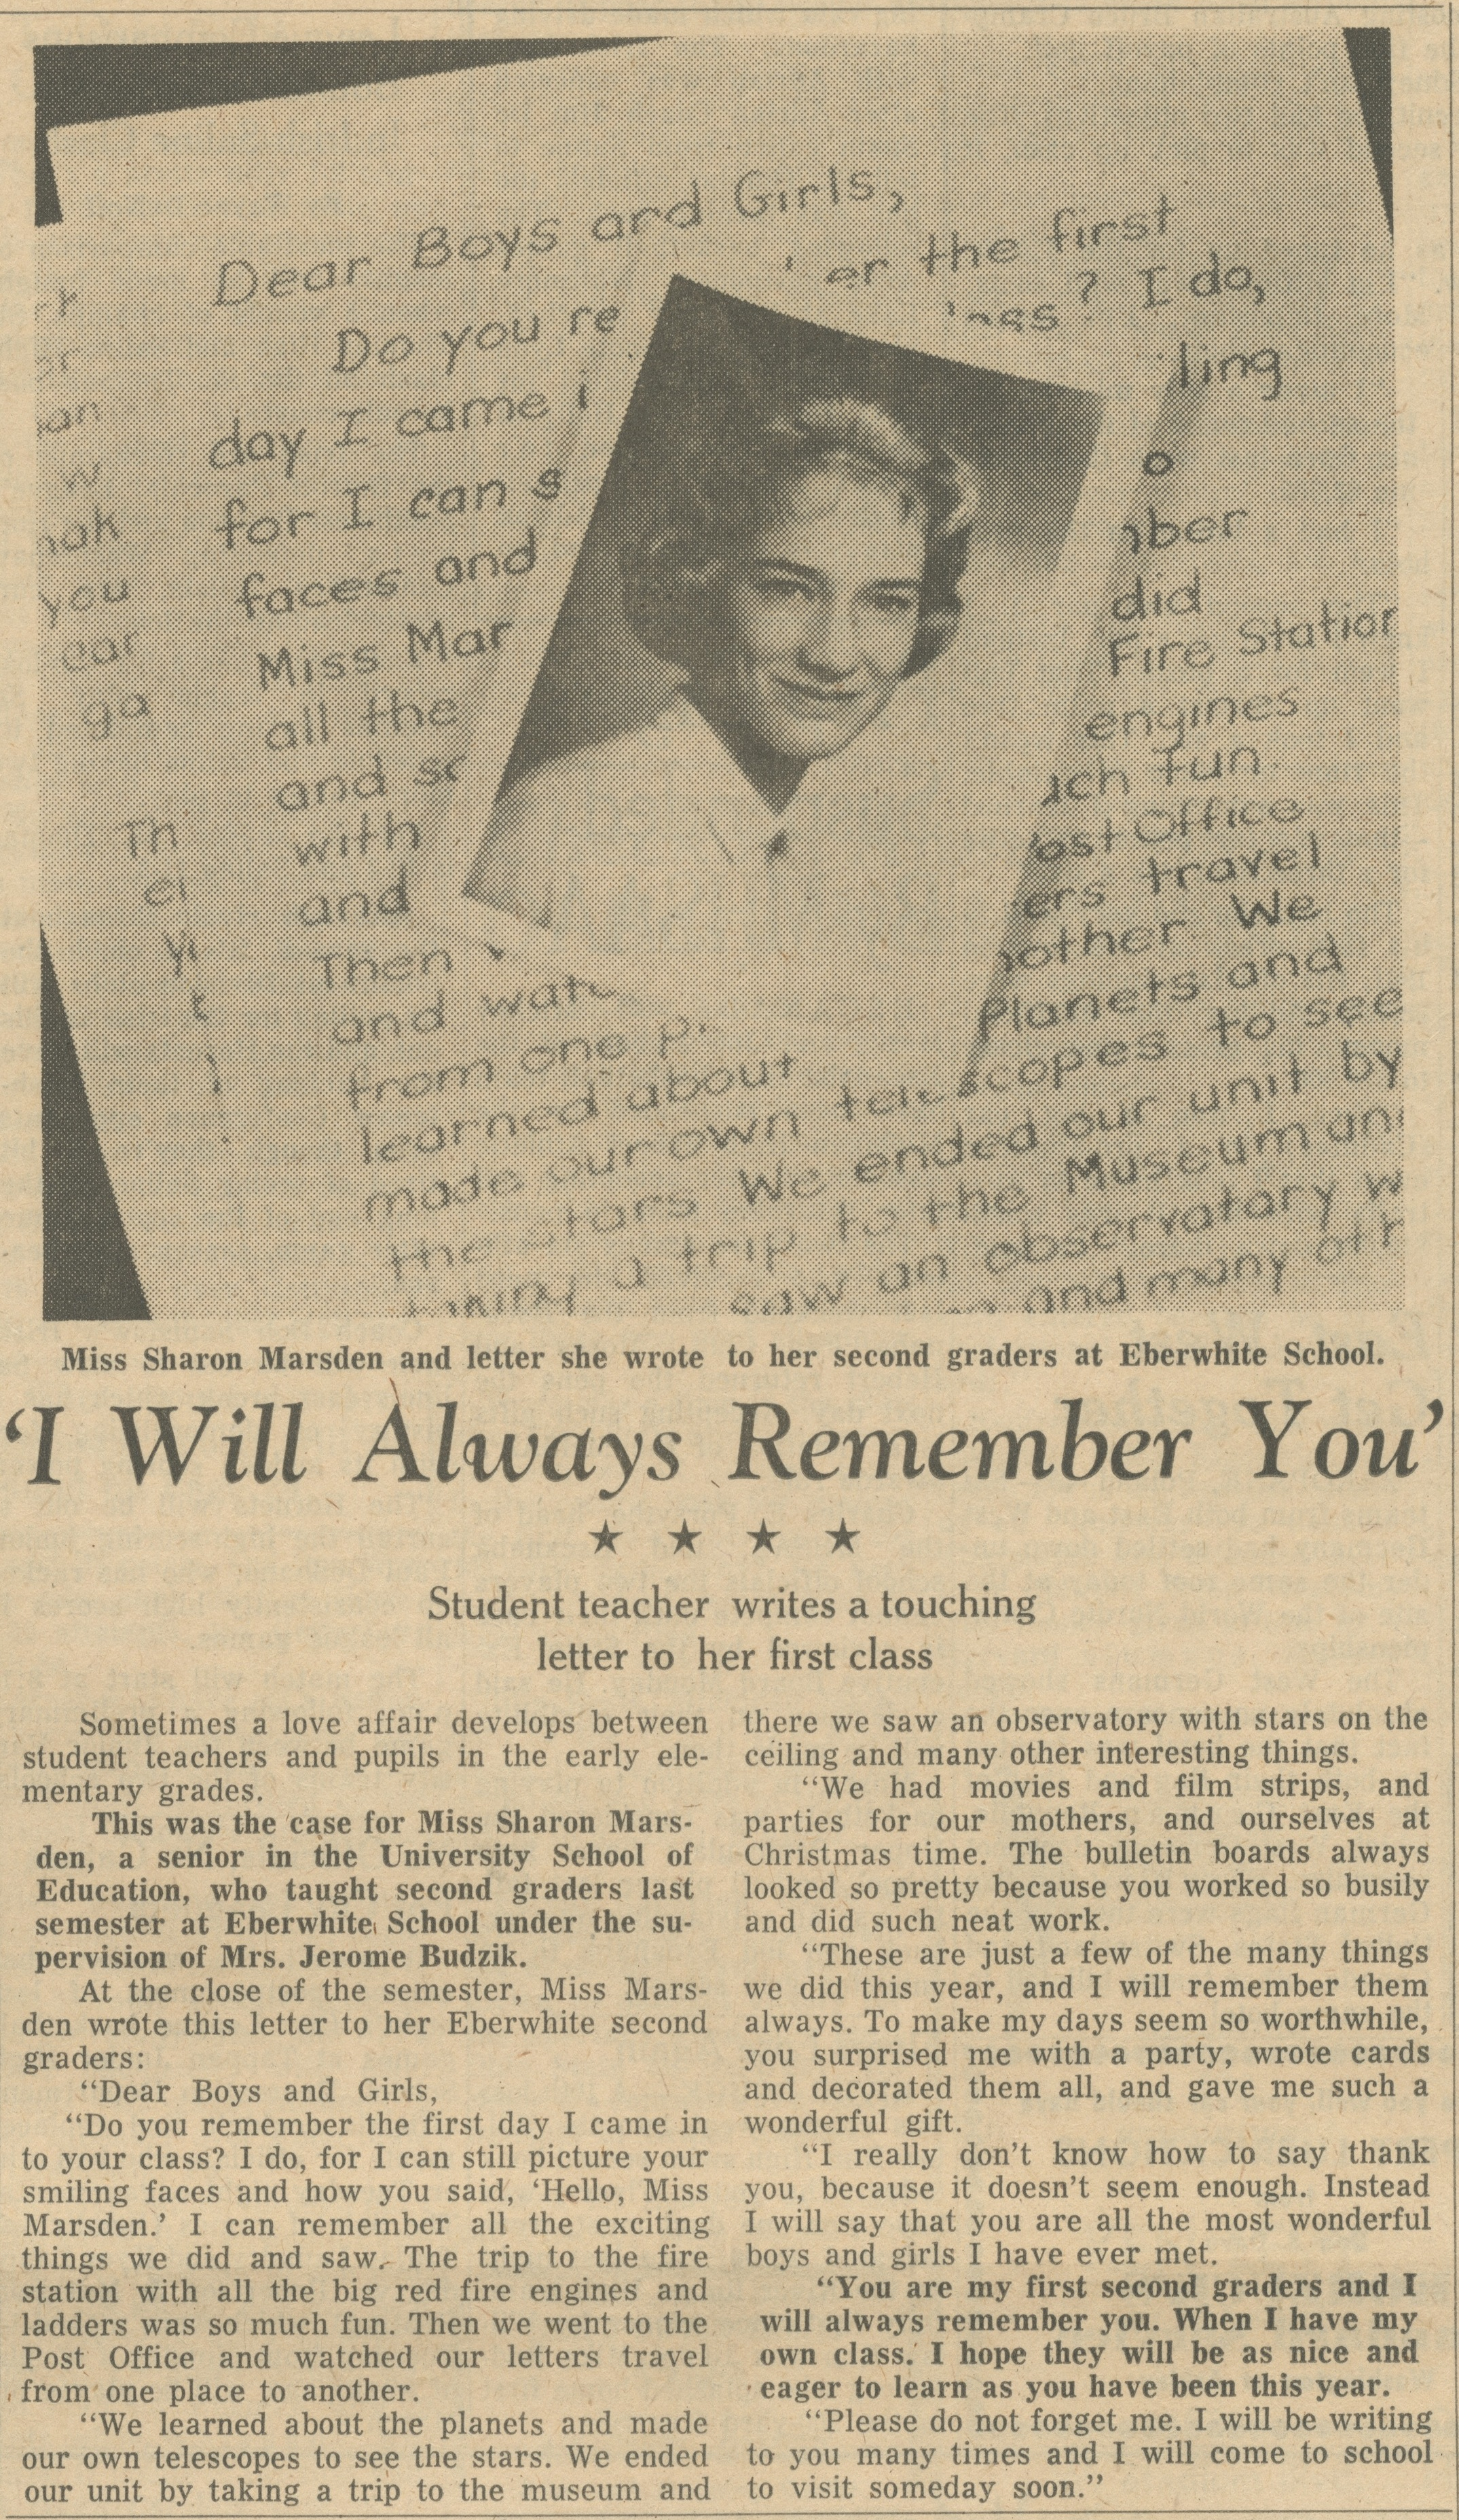 'I Will Always Remember You' image